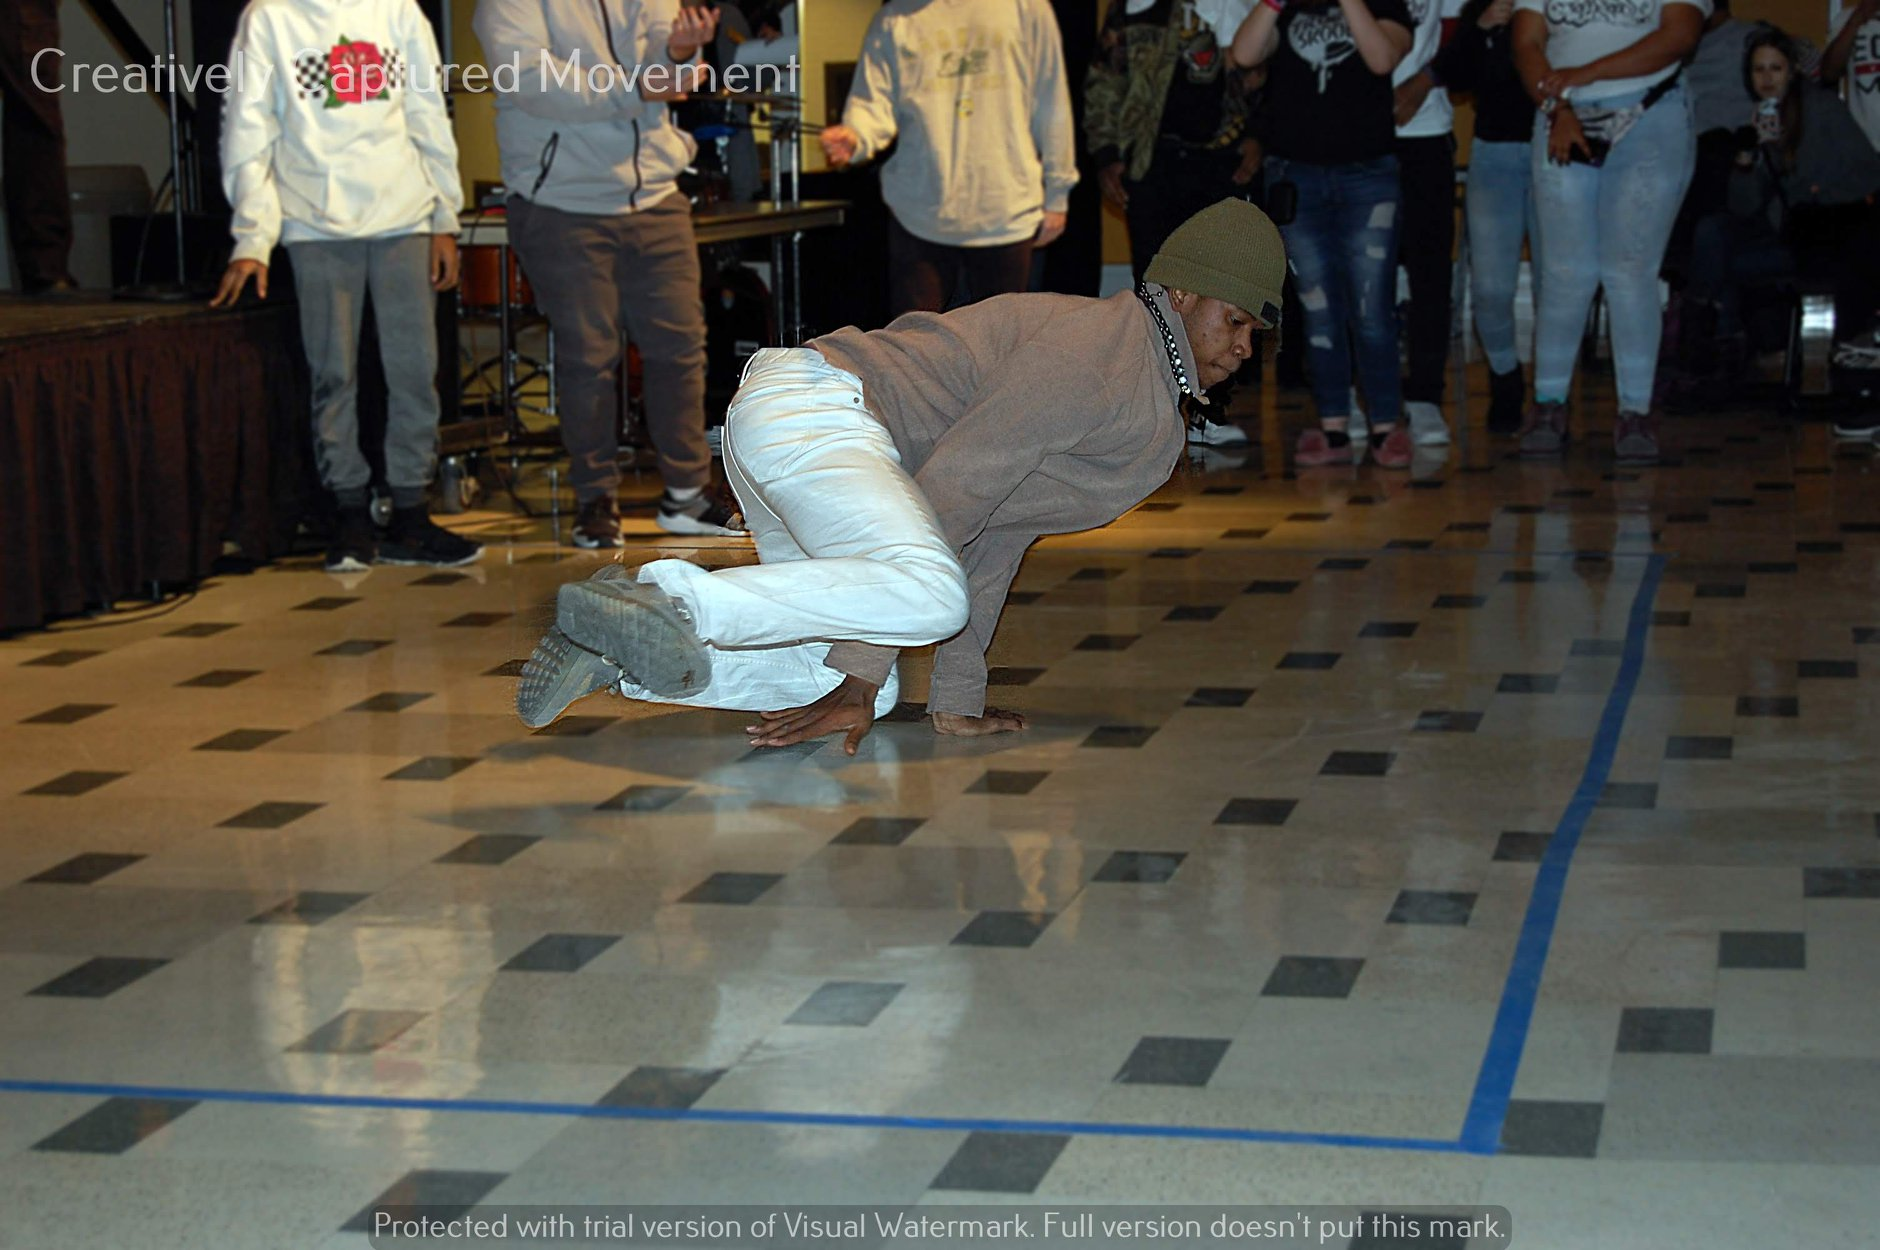 Most artists showed off more than one talent during the event. (Picture provided by TRUE Skool)